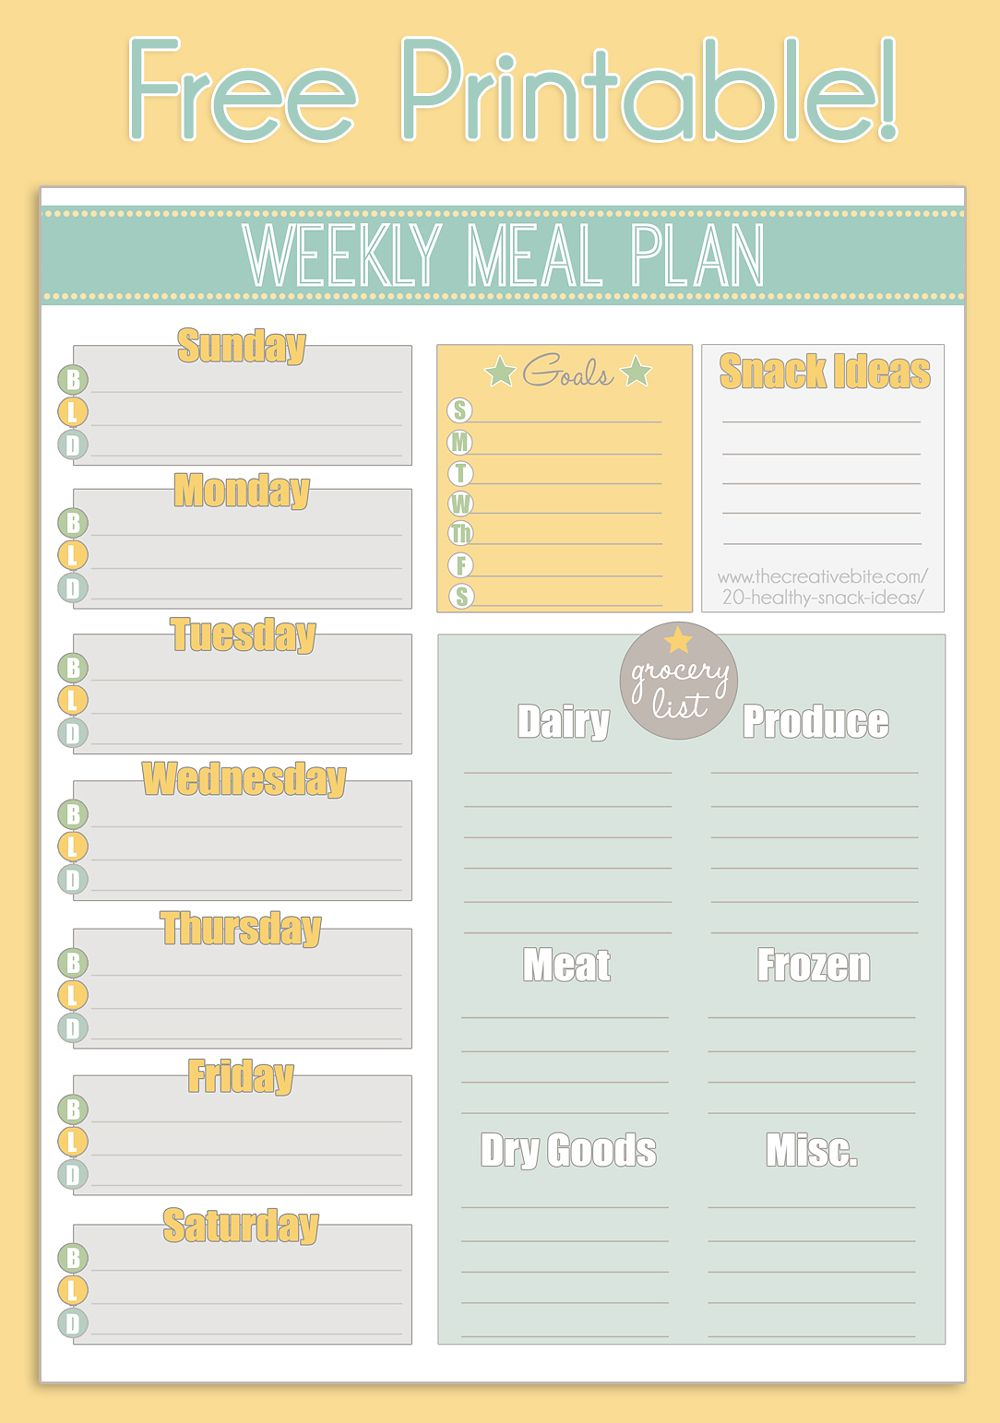 004 Simple Free Meal Plan Template Highest Quality  Templates Easy Keto Printable Planner For Weight LosFull